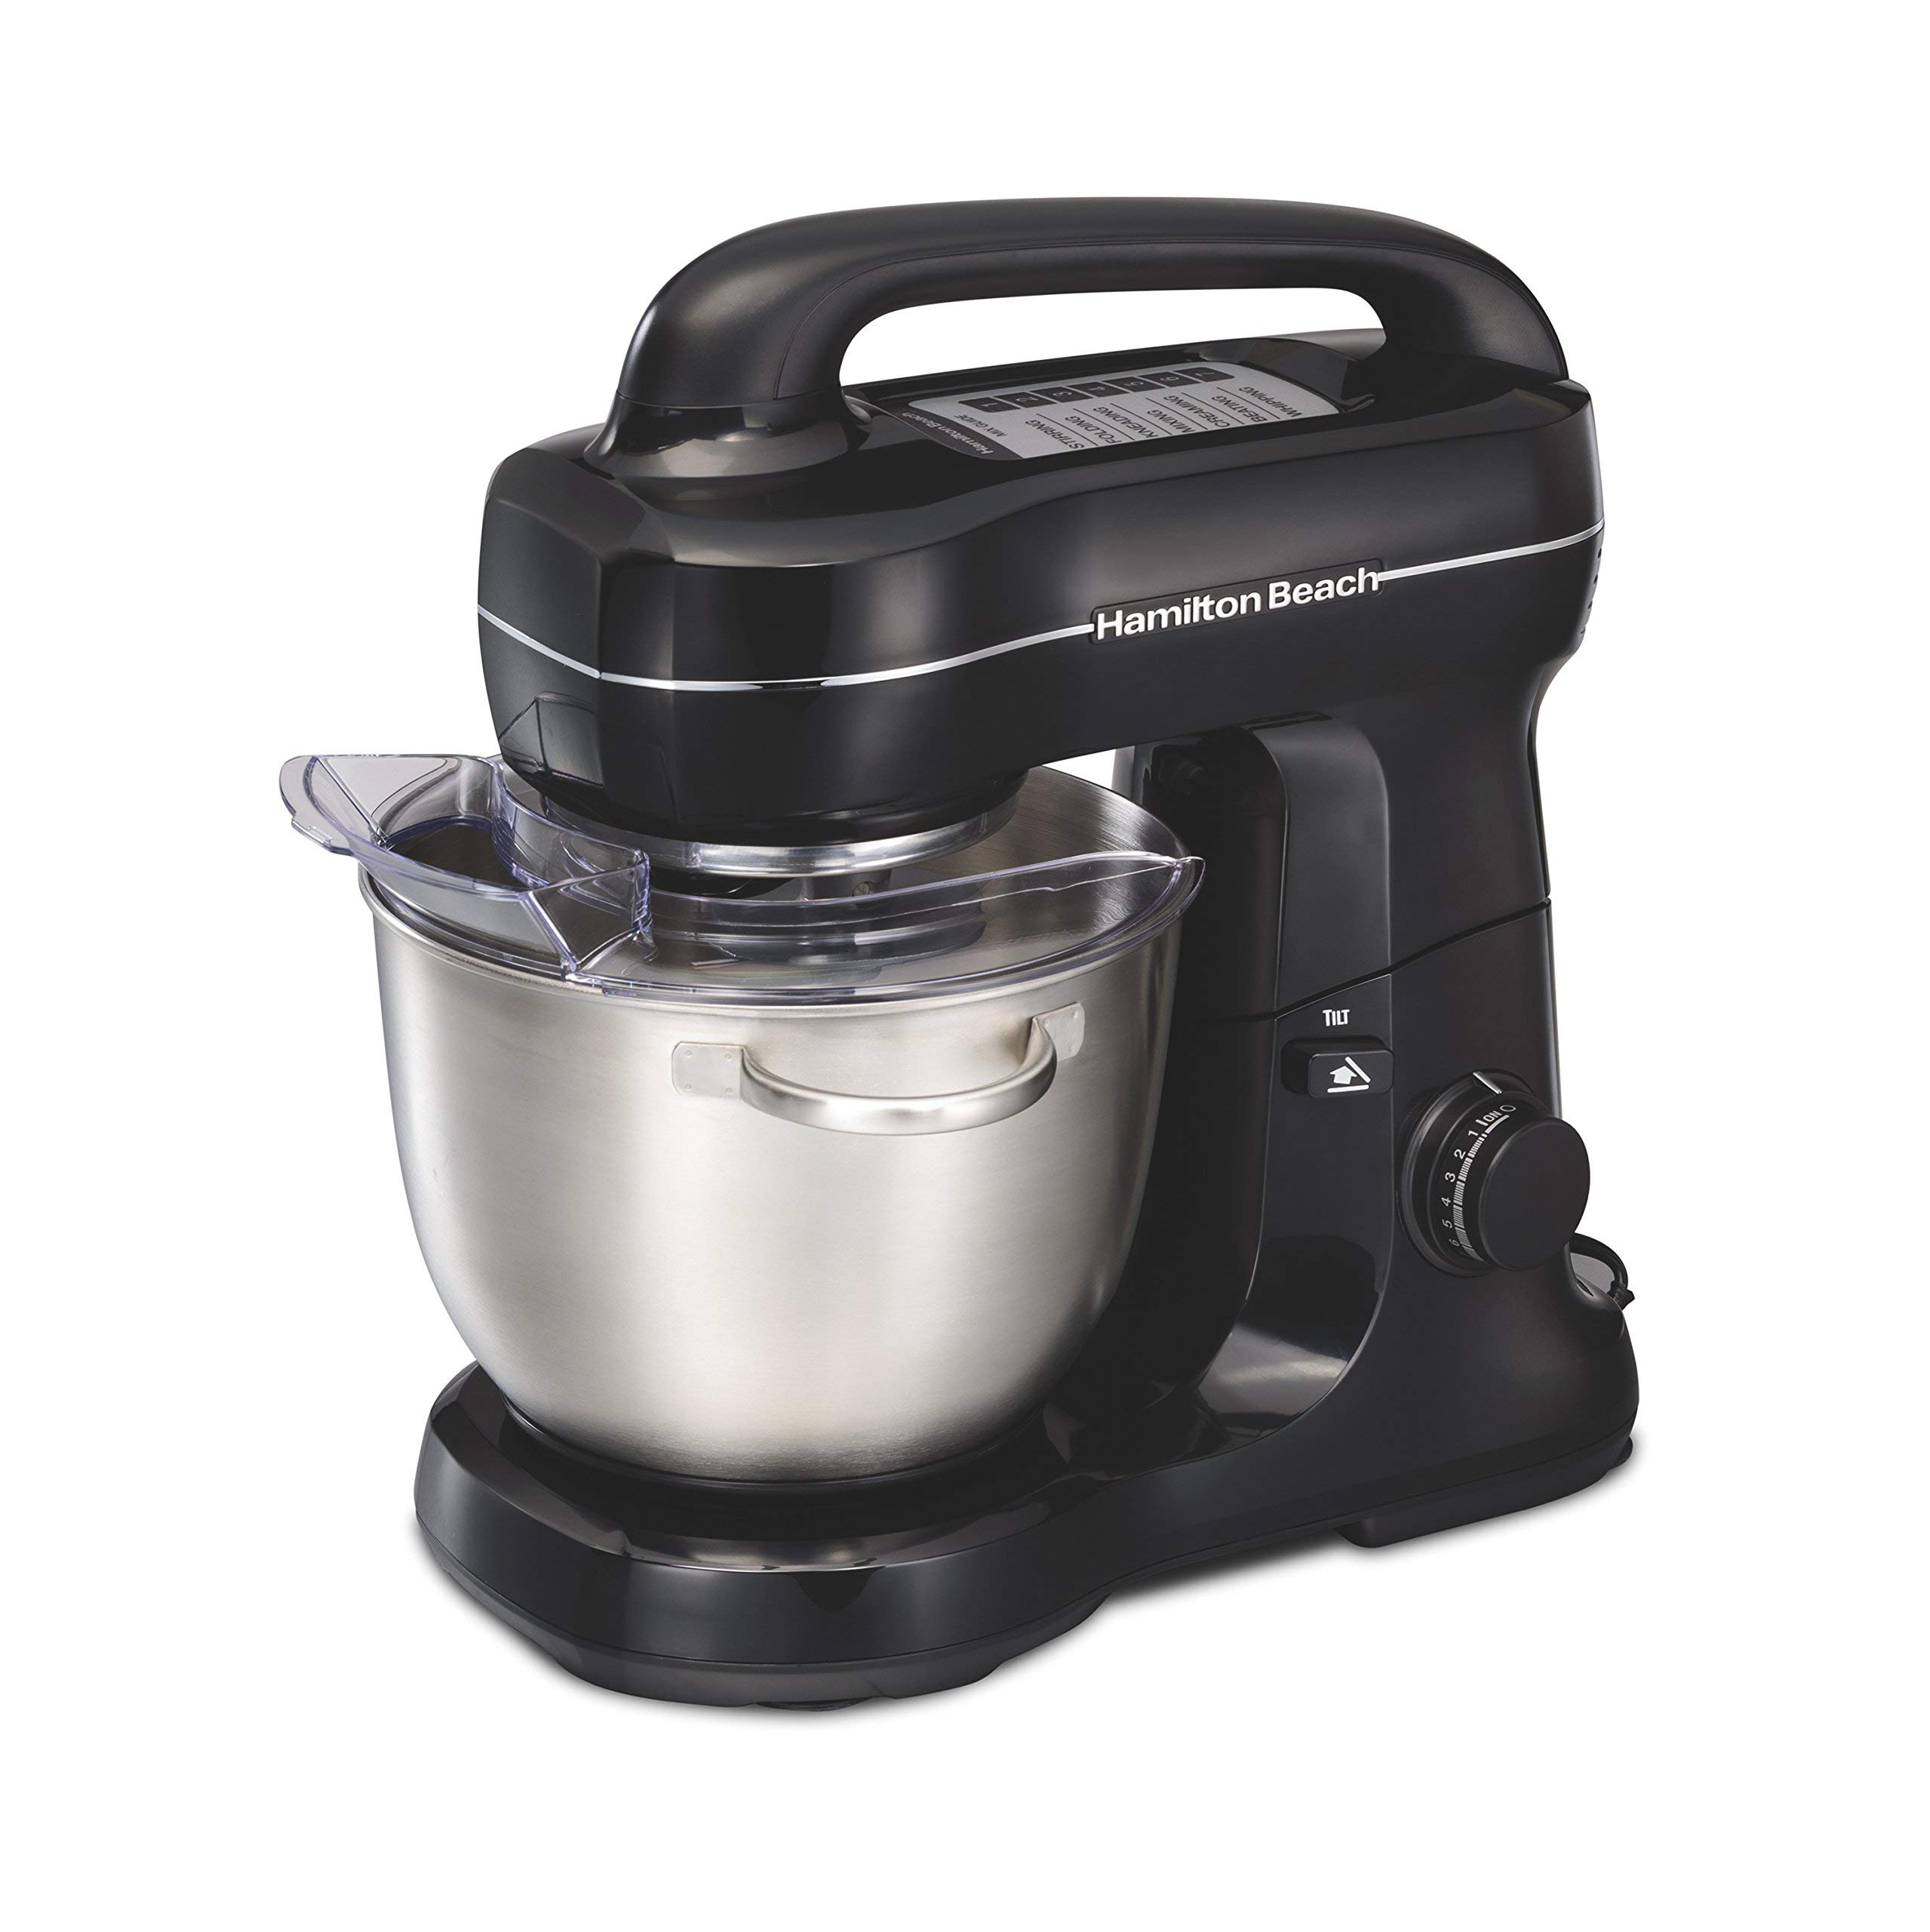 Hamilton Beach 63391 Stand Mixer, 7 Speeds with Whisk, Dough Hook, Flat Beater Attachments, 4 Quart, Black (Renewed) by Hamilton Beach (Image #1)